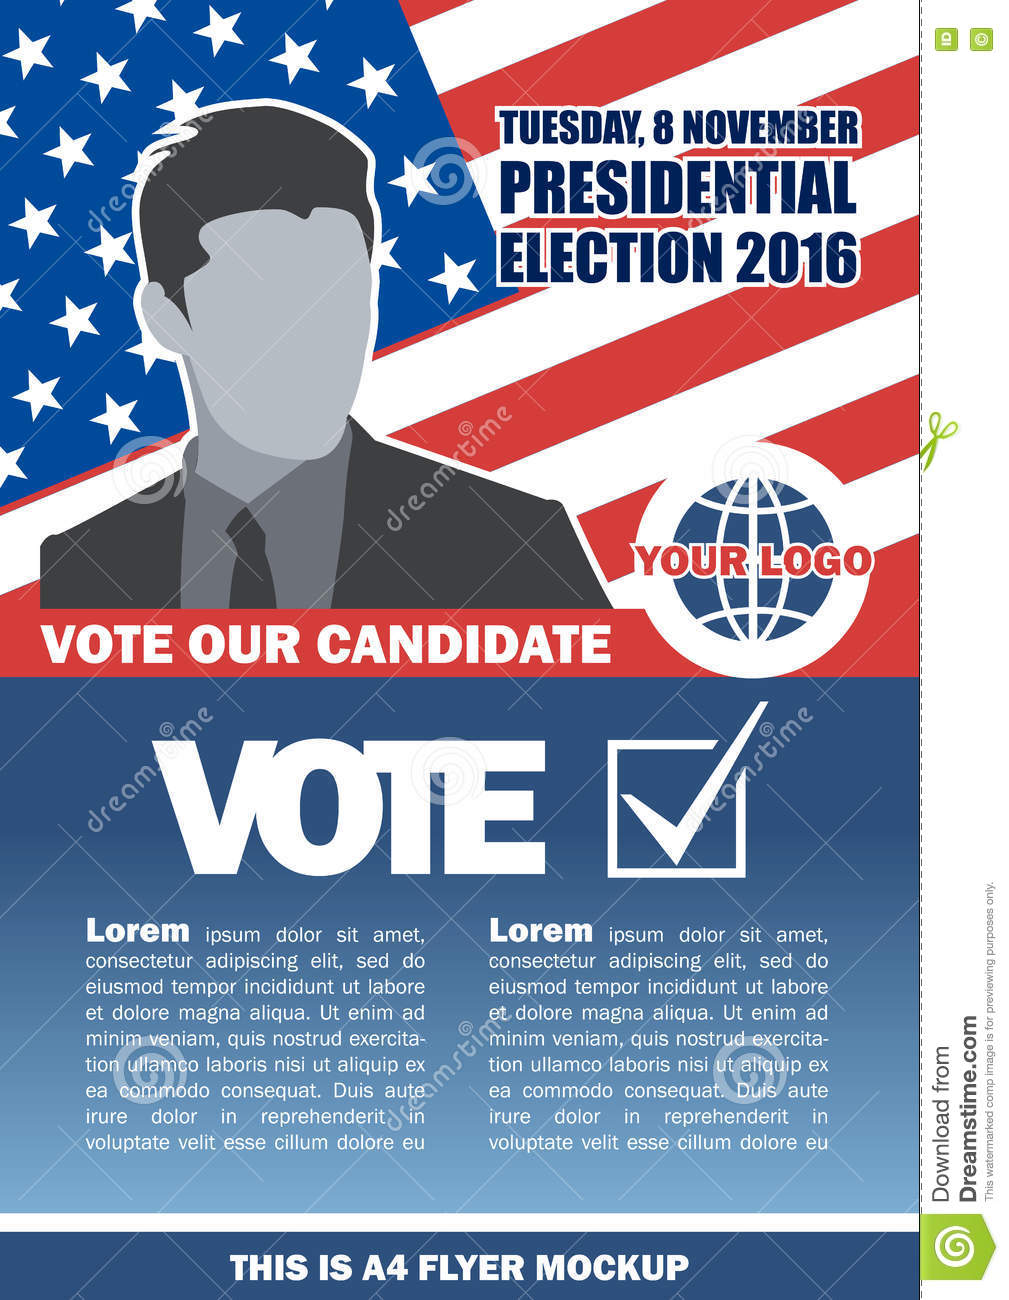 2016 Candidate Checkbox Country Digital Election Flyer Image Male Map Mockup Usa